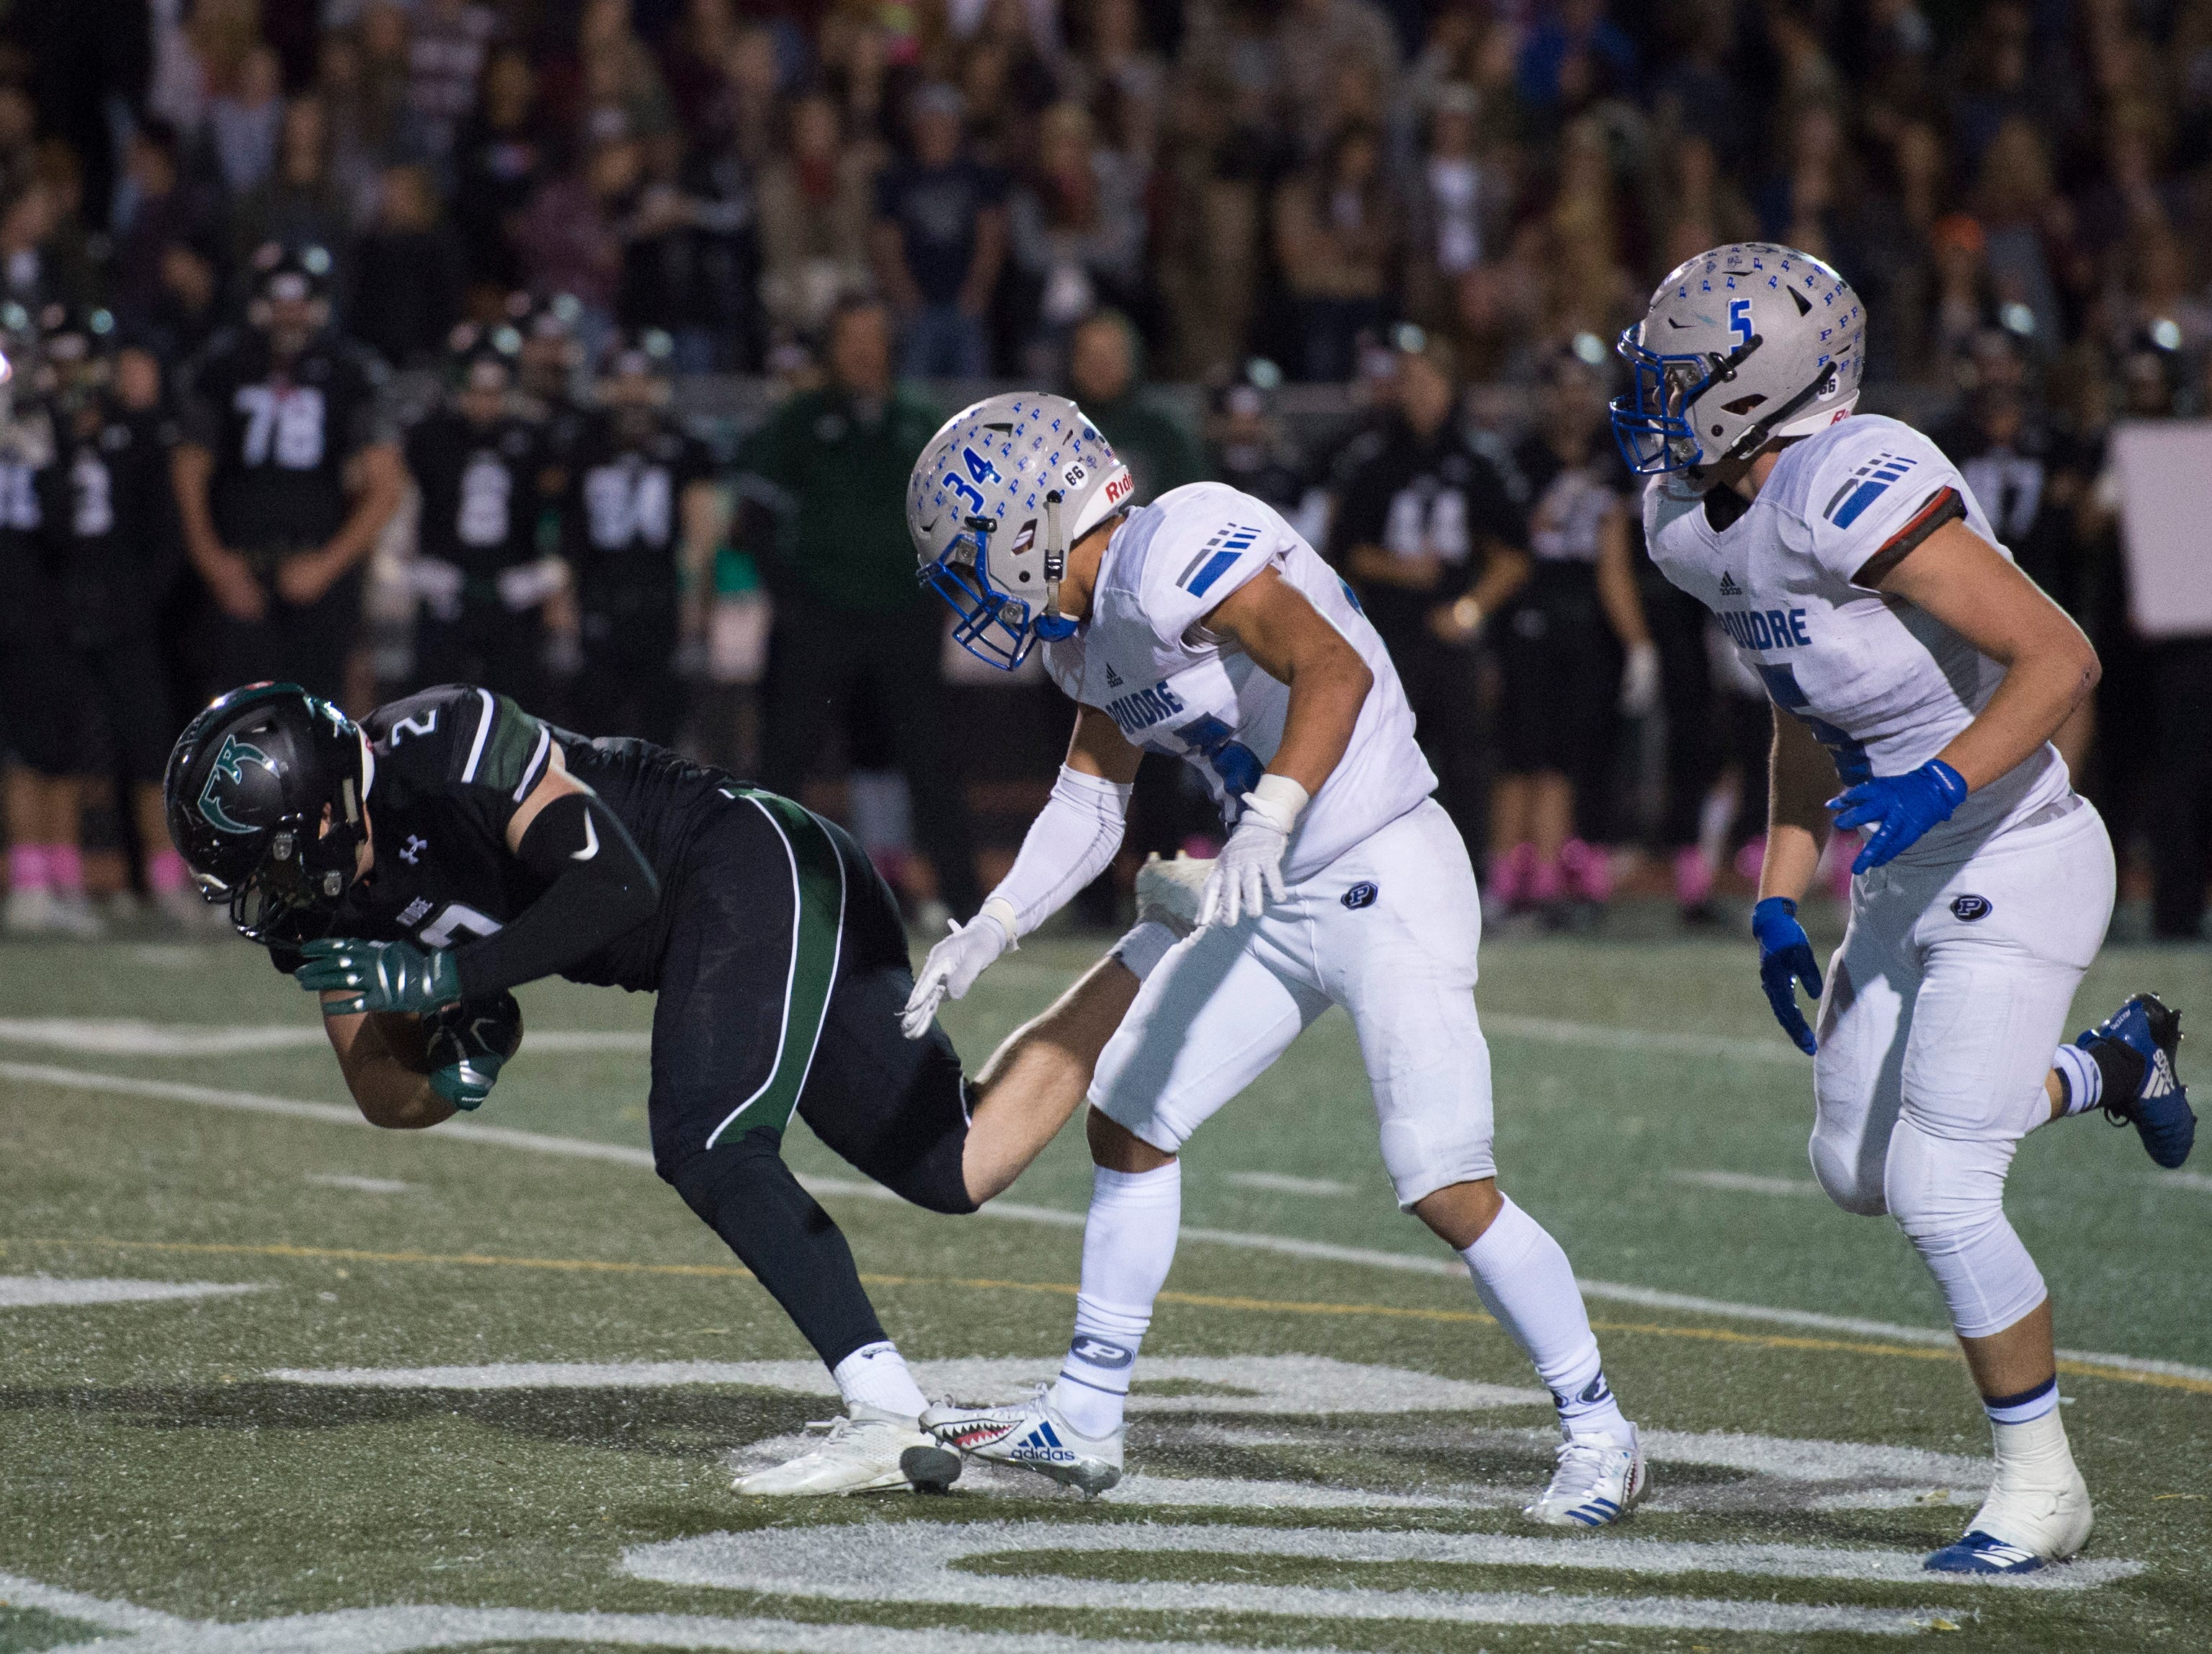 Fossil Ridge High School's Jack Blomfelt goes down after a push from defensive back Kobi Salinas during a game against Poudre at French Field on Friday, October 26, 2018.